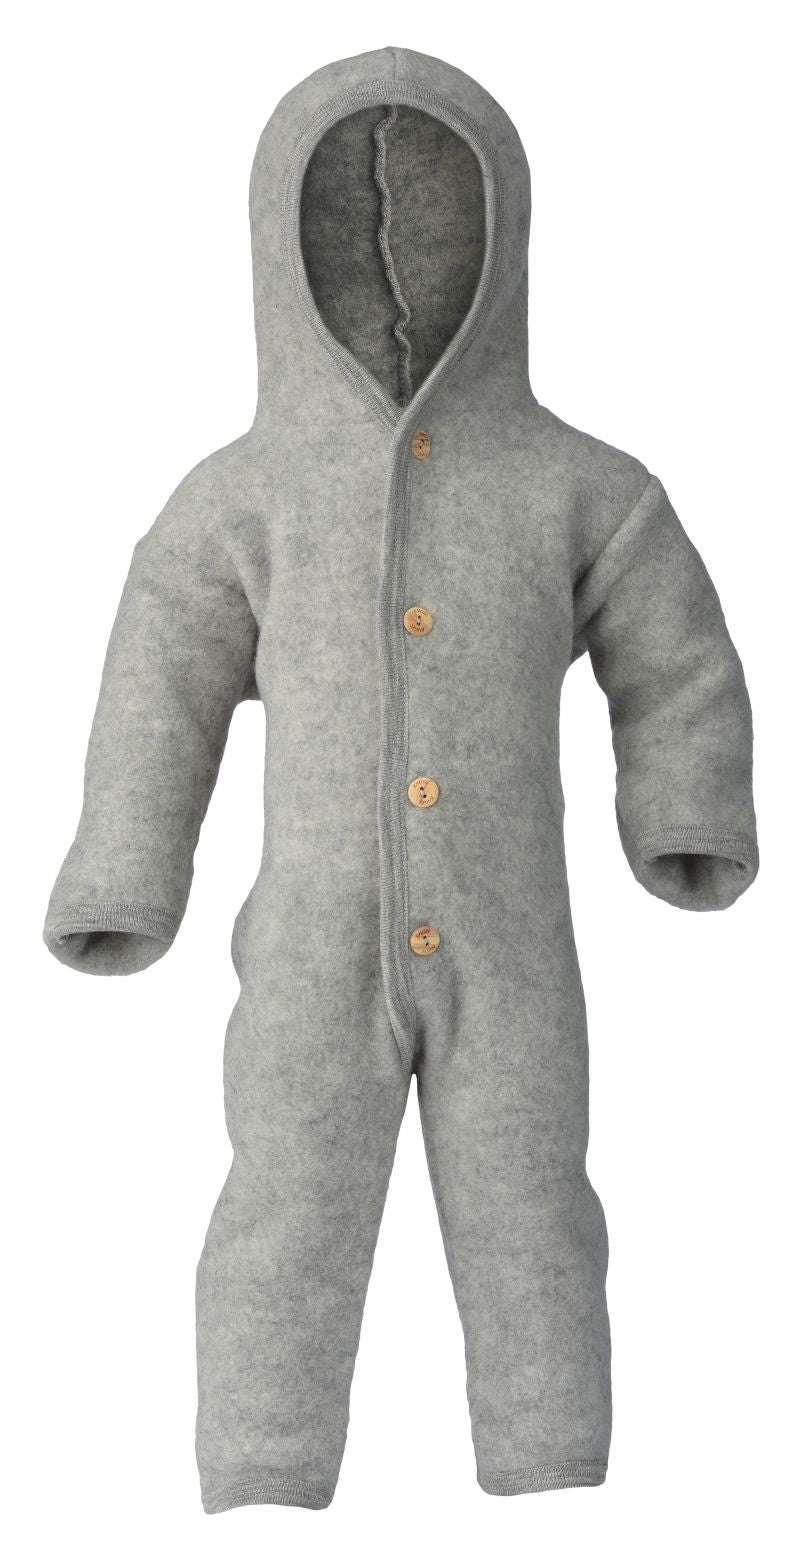 Engel Natur overall wolfleece - light grey